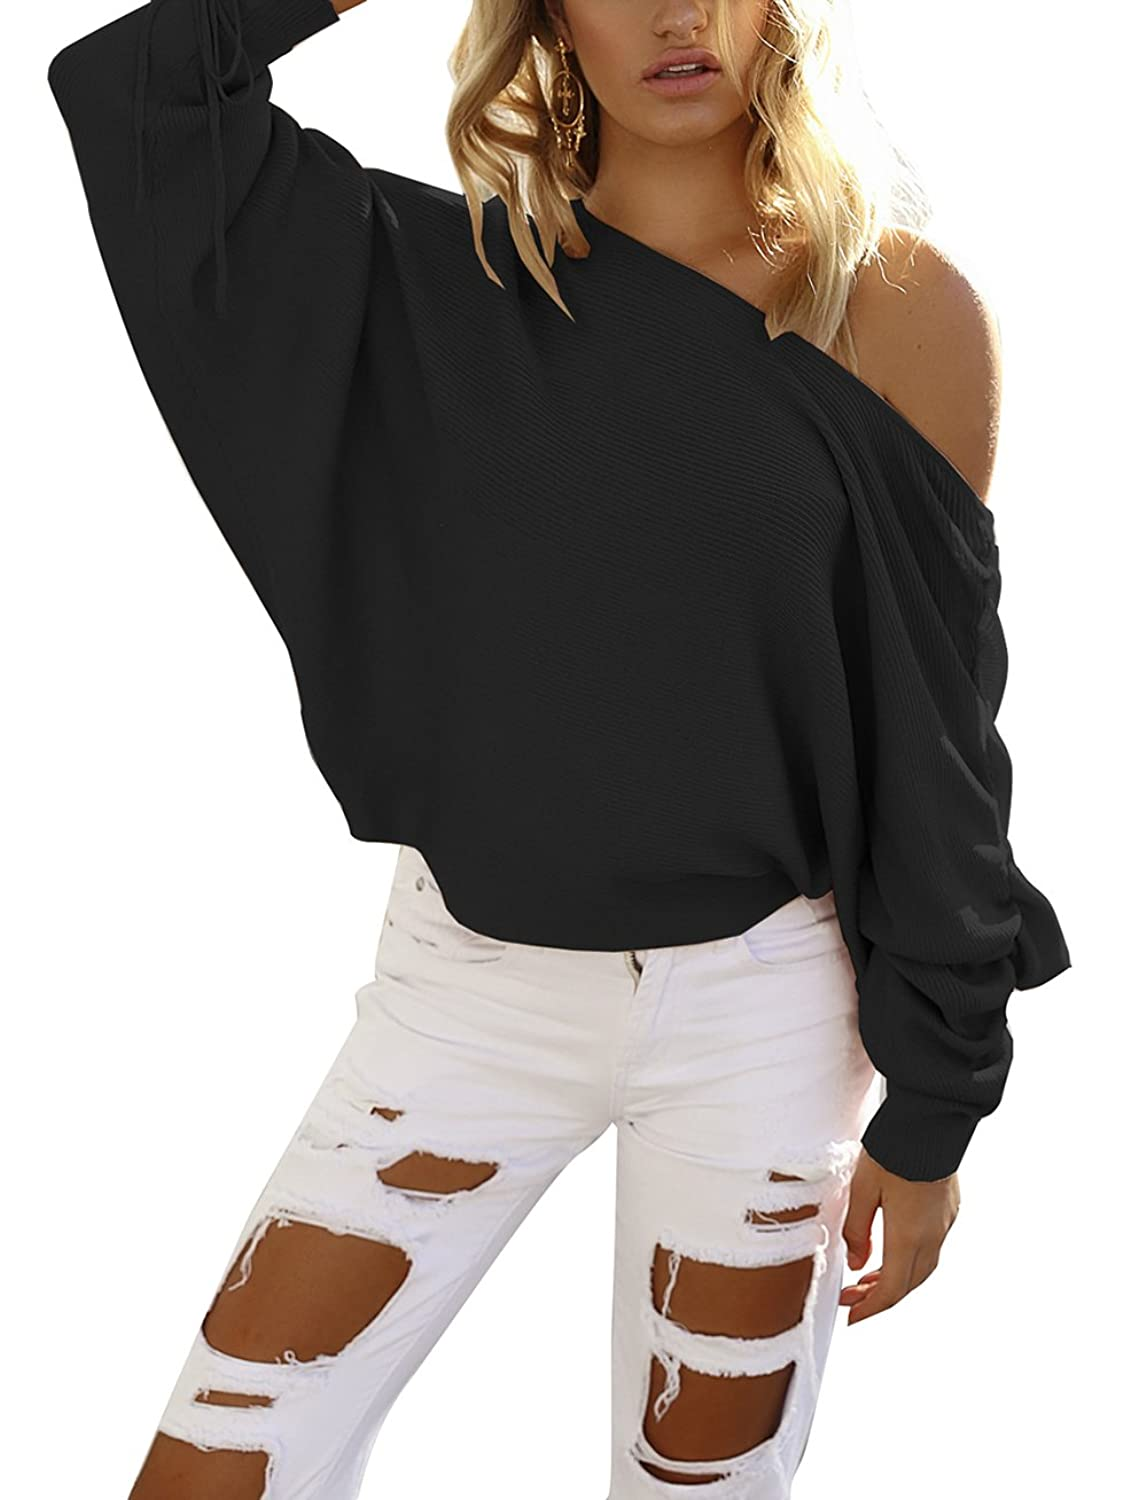 Yieune Pullover for Women Long Sleeve Oversized Sweater Casual Knitted Sweatshirt